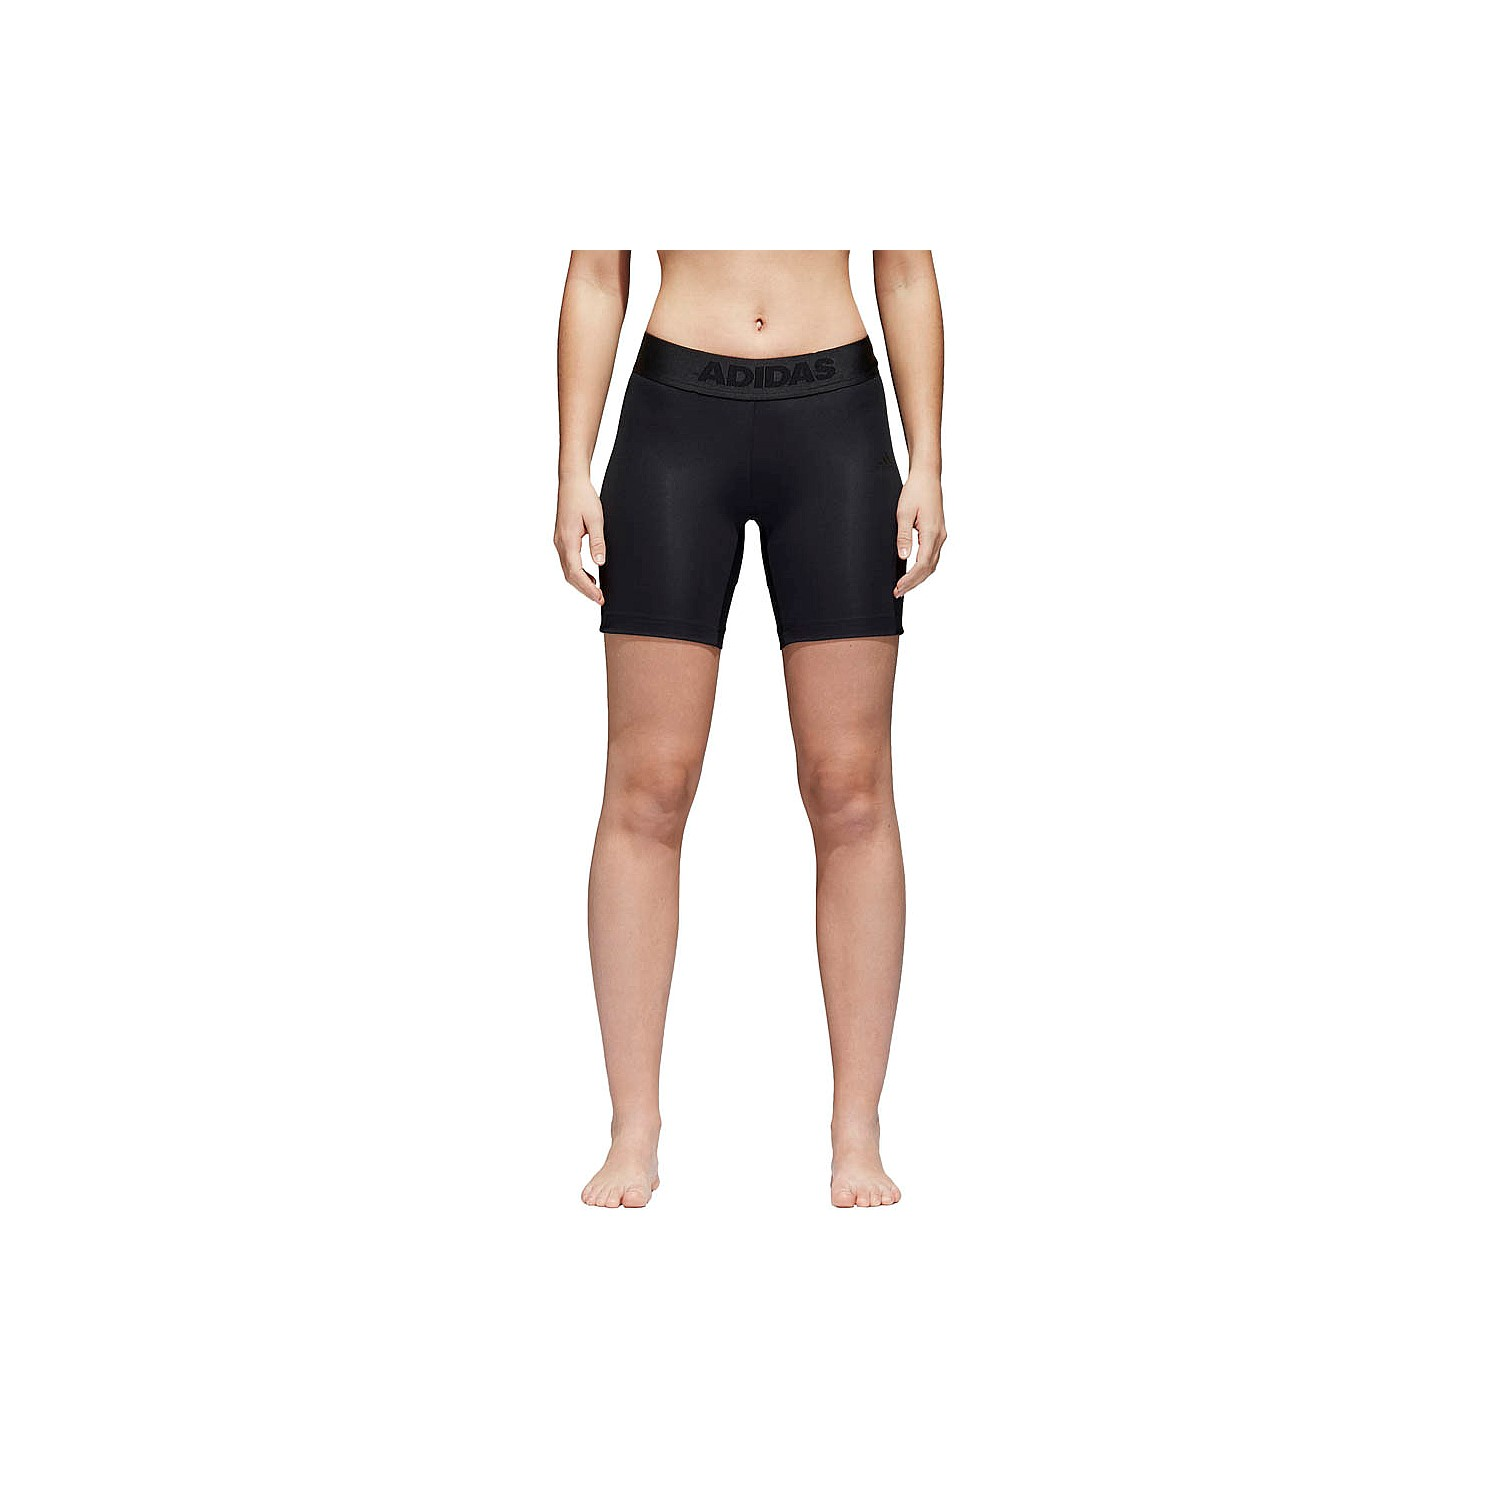 the best attitude e298c 4dd25 adidas  Shop adidas Performance Clothing, Footwear and Accessories Online   Stirling Sports - Alphaskin Sport Short Tights